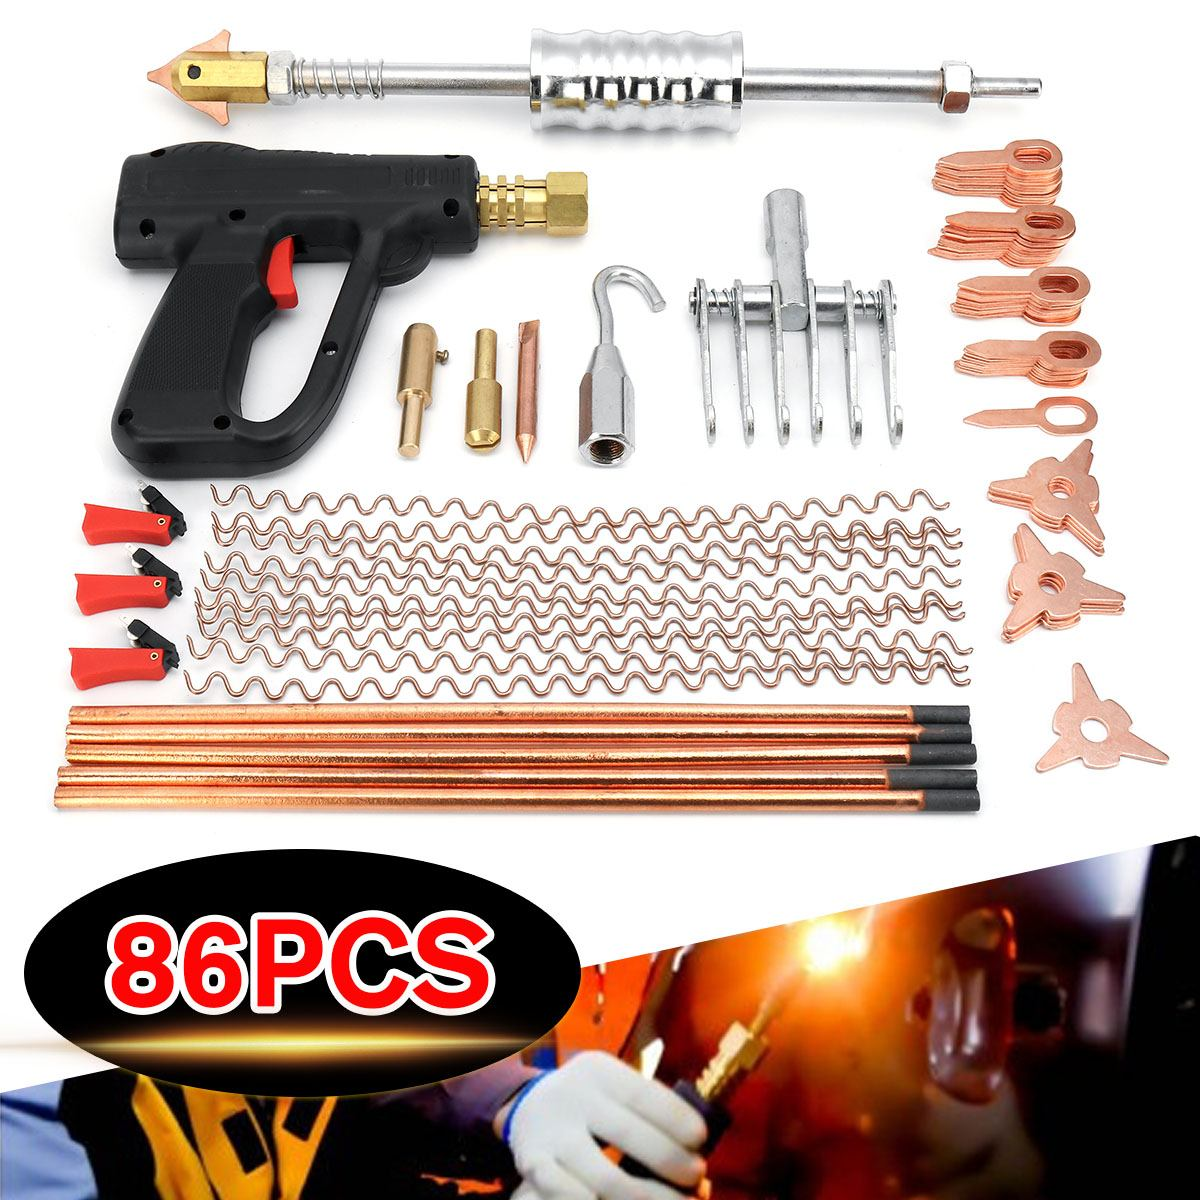 86pcs/set Car Body Dent Repair Puller Kit Dent Spot Repair Removal Device Stud Mini Welding Machine Pulling Hammer Tool Kit